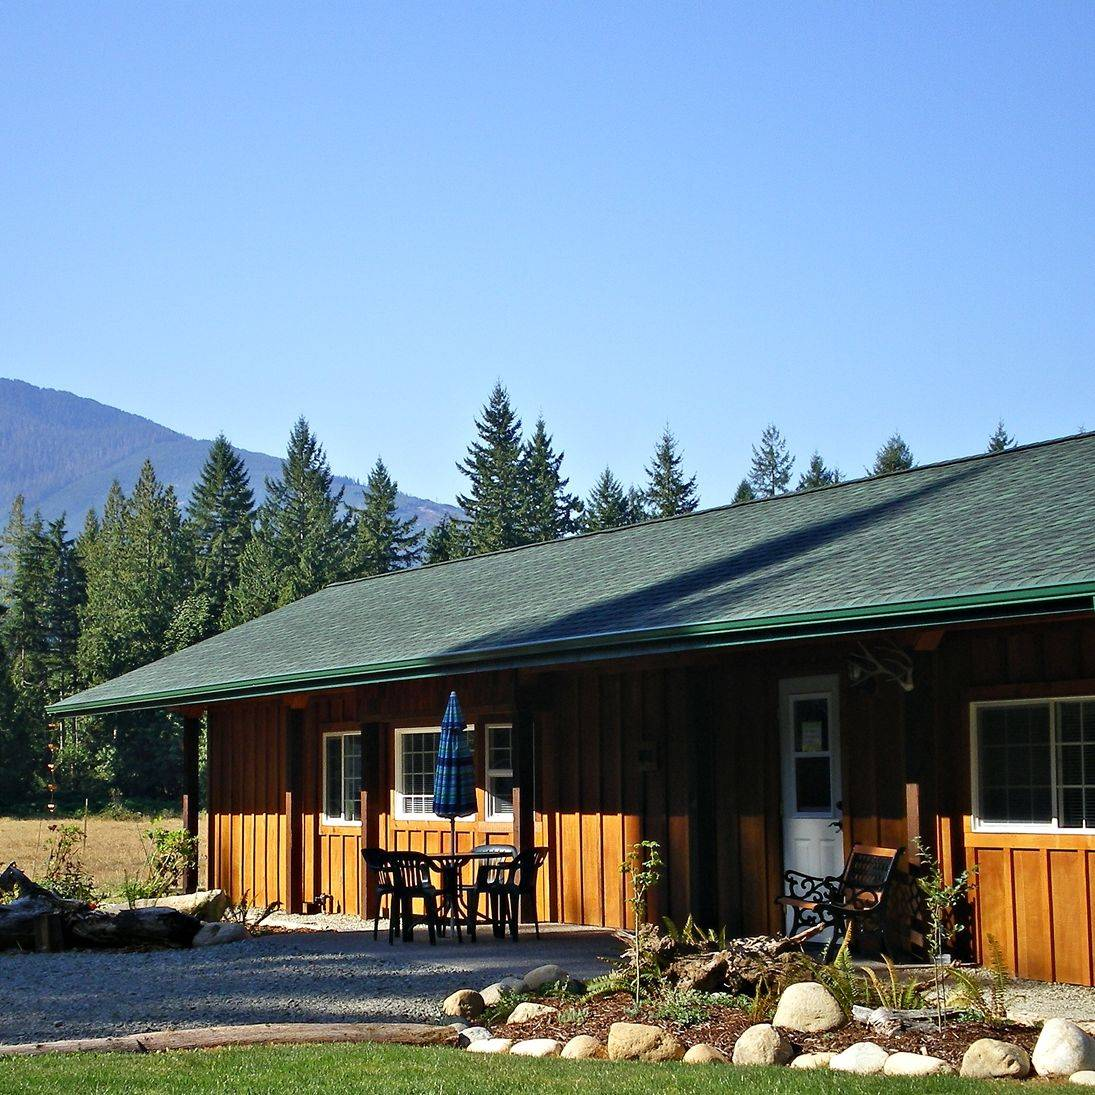 Log cabins in Concrete, lodging, hotels, North Cascades